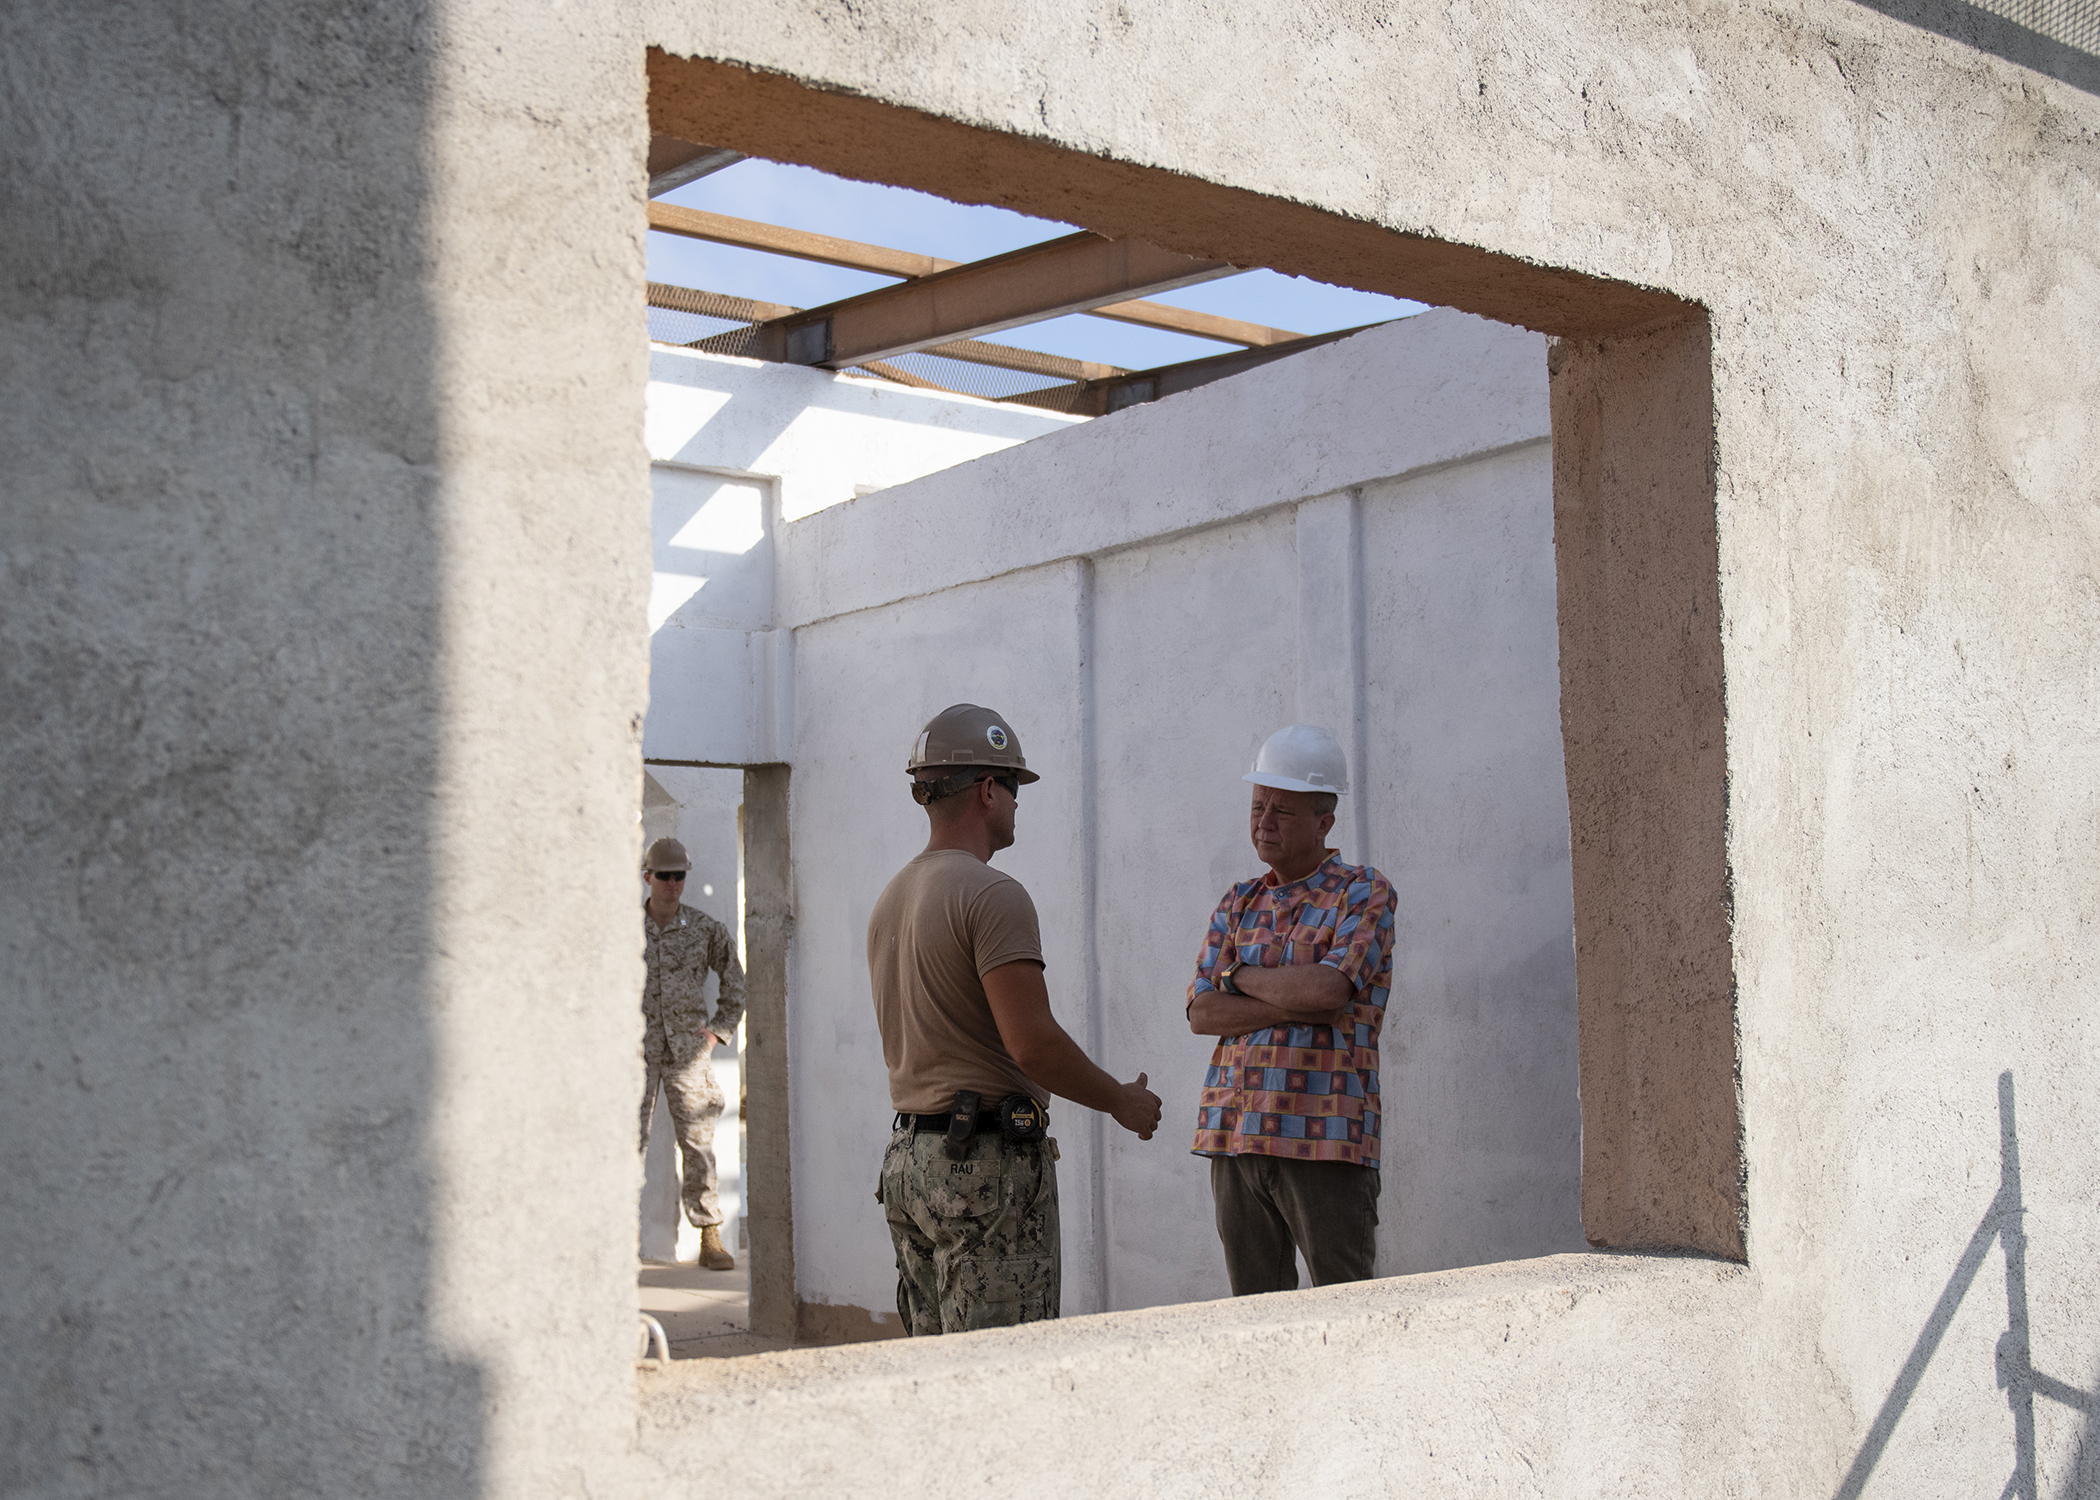 Amb. Larry André Jr., U.S. Ambassador to the Republic of Djibouti, speaks to a U.S. Navy Seabee, assigned to Combined Joint Task Force-Horn of Africa, Camp Lemonnier, Djibouti, during a visit to the construction site of the future Ali Oune, Djibouti, Women's Medical Clinic, Dec. 3, 2018. Slated for completion by January 2019, the clinic is intended to enhance the Ministry of Health for Djibouti's ability to provide basic medical, birth and after care to the Ali Oune village and its more than 1,000 residents and rural neighbors. (U.S. Air Force photo by Tech. Sgt. Shawn Nickel)